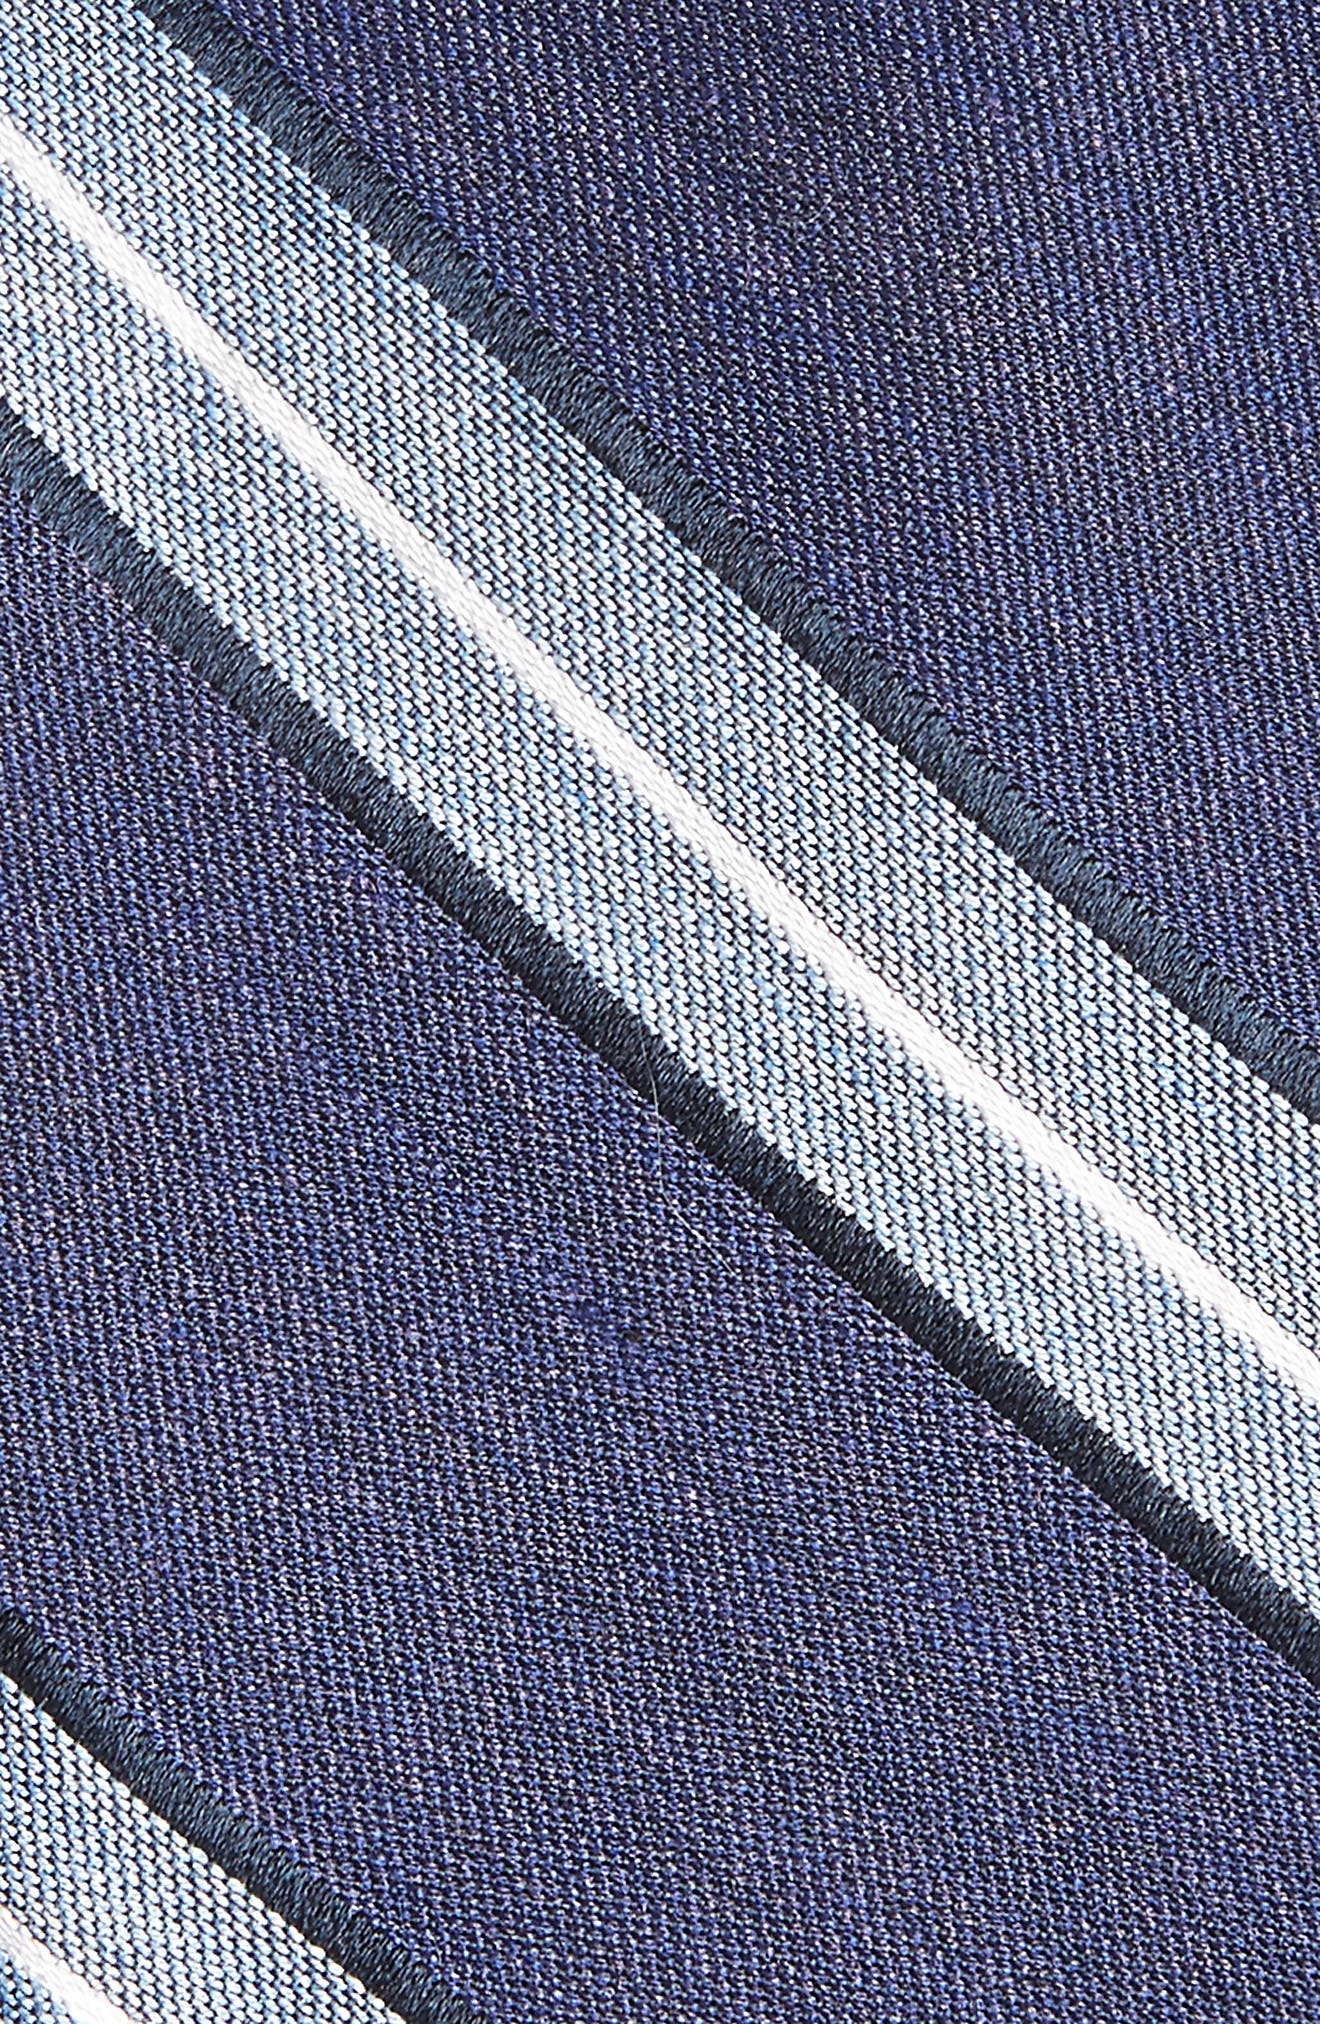 Peralba Stripe Silk Blend Tie,                             Alternate thumbnail 2, color,                             Navy